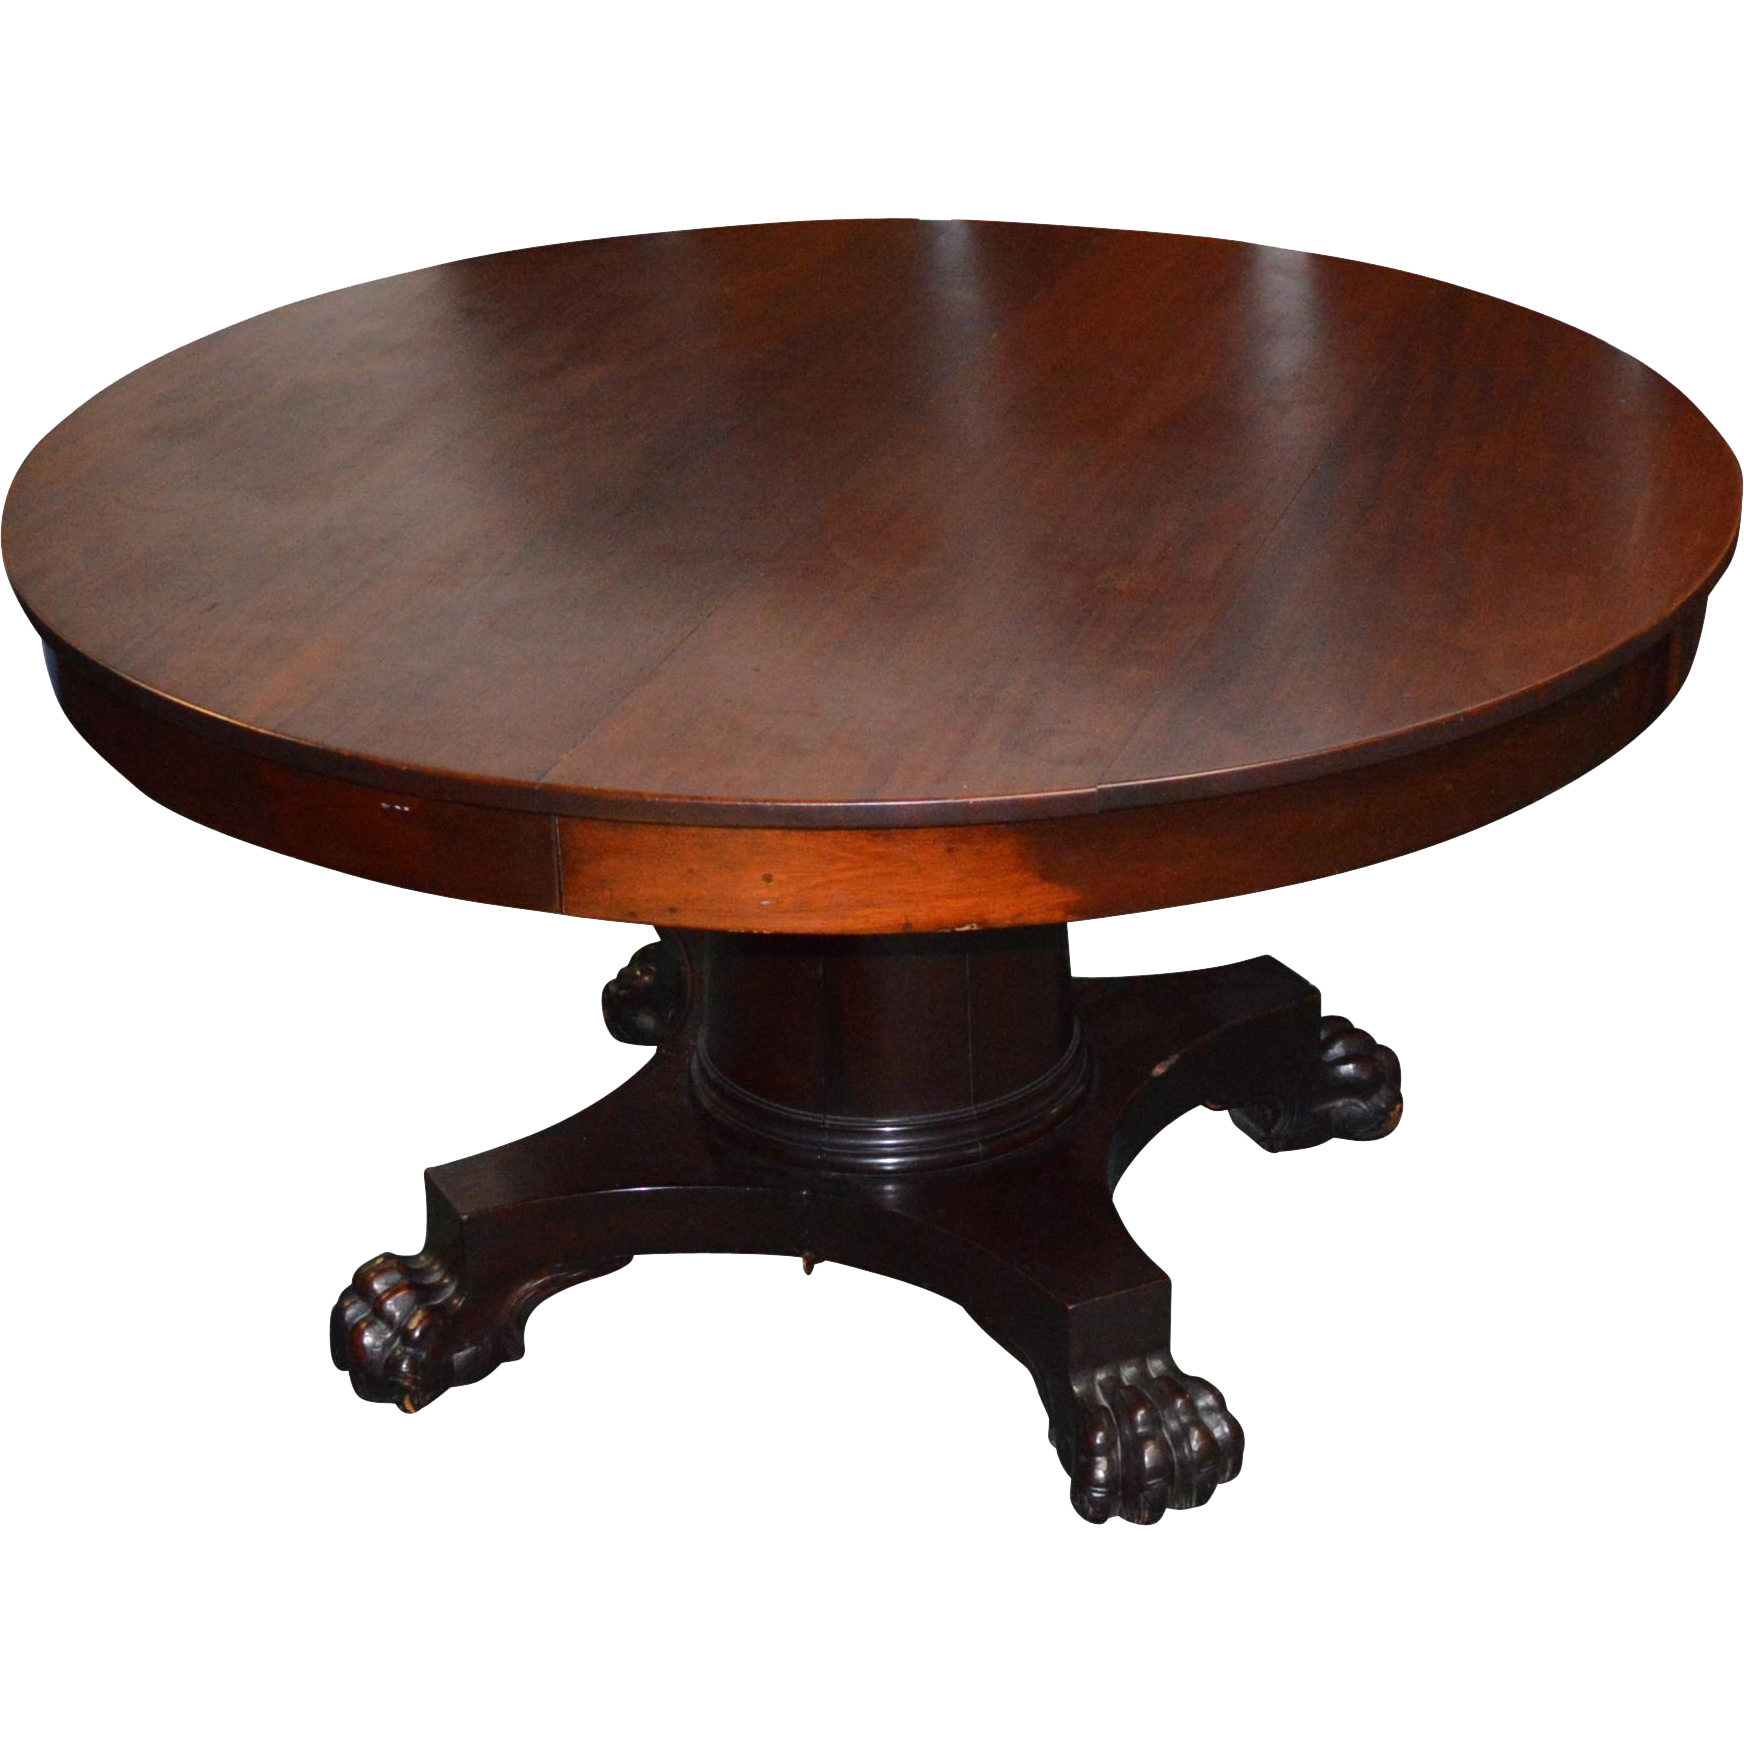 Empire Mahogany Claw Foot Dining Room Table 5 Leaves from